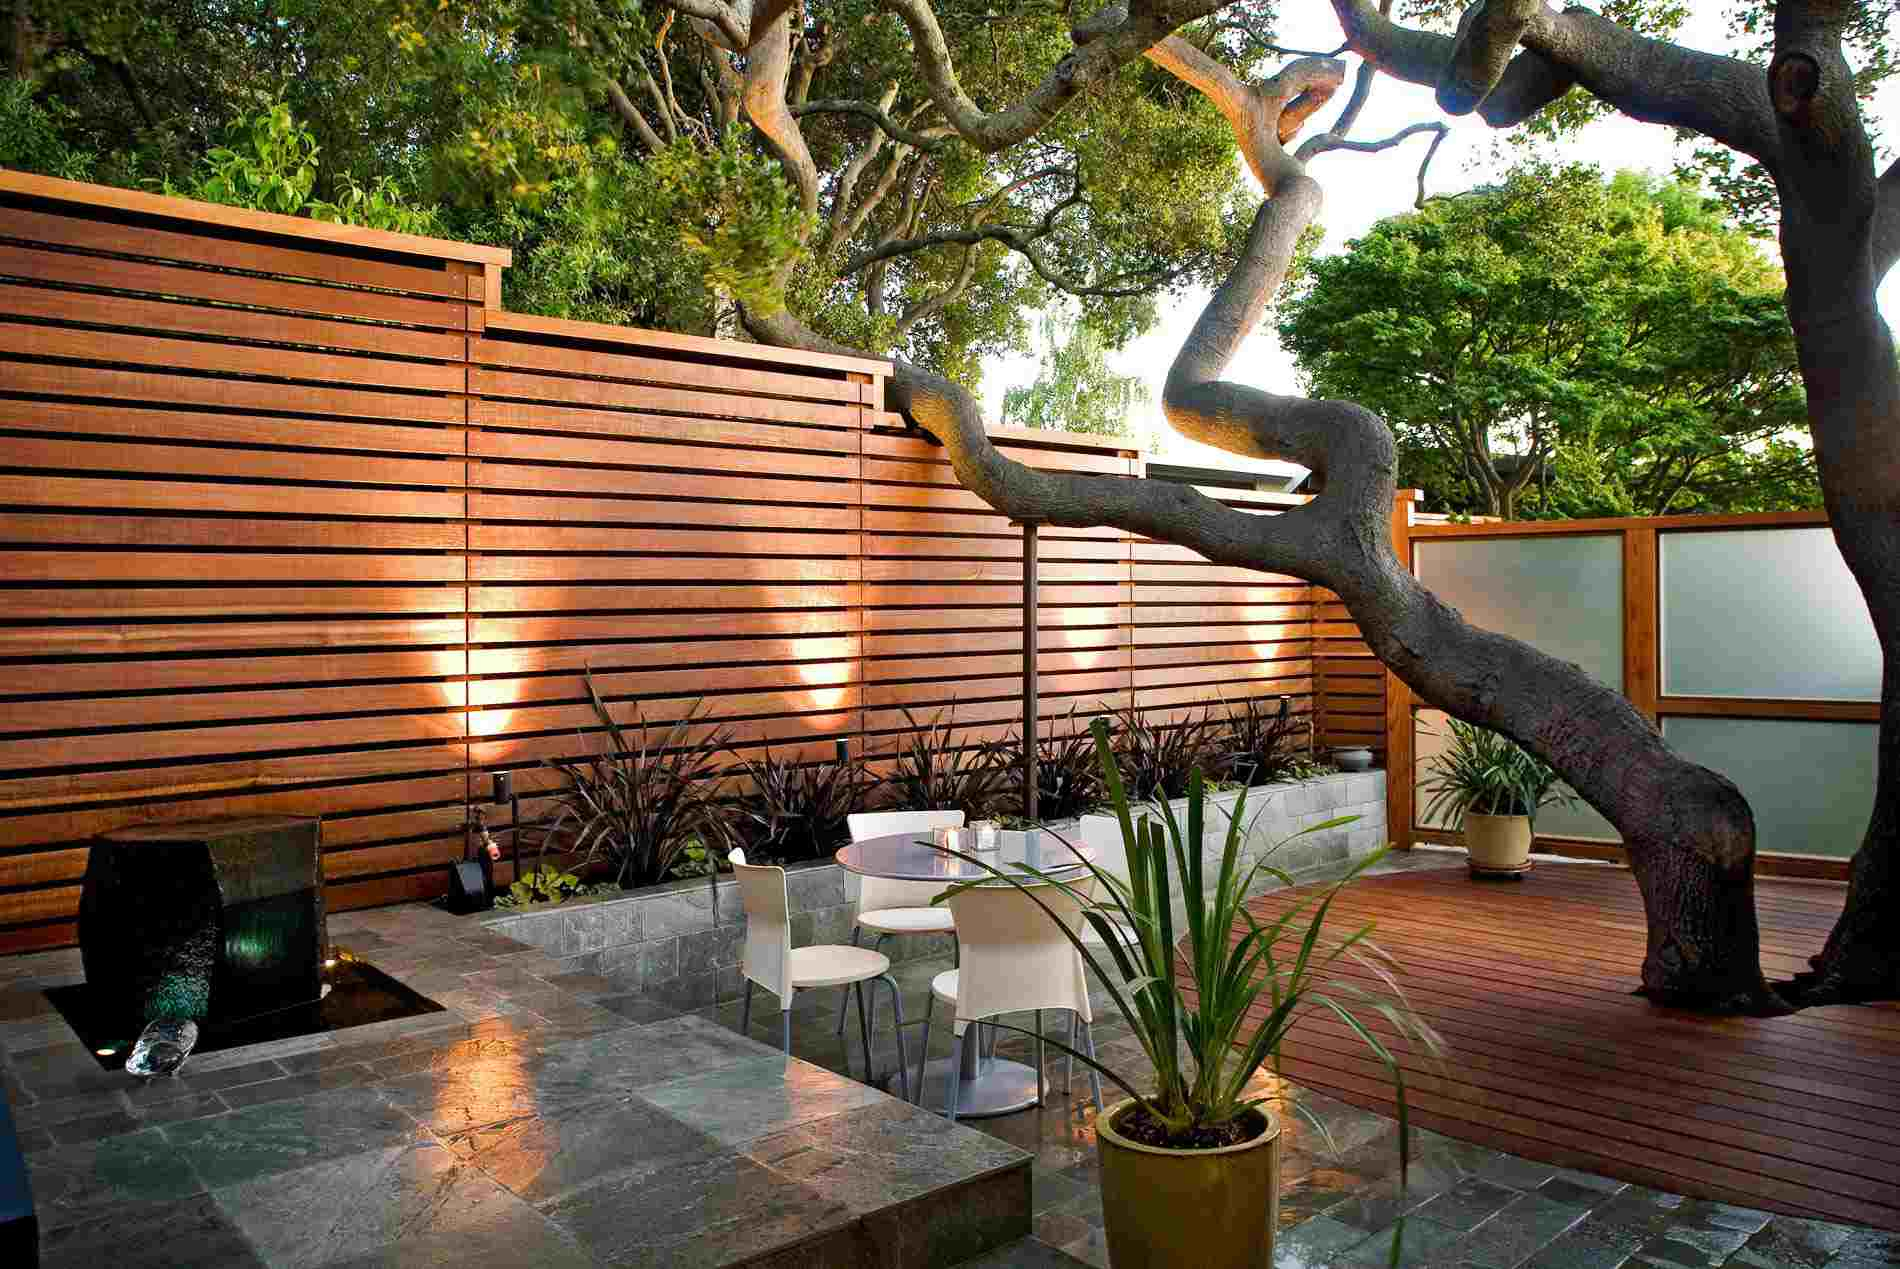 13 Ways To Gain Privacy In Your Yard pertaining to 12 Some of the Coolest Designs of How to Makeover Backyard Privacy Fence Ideas